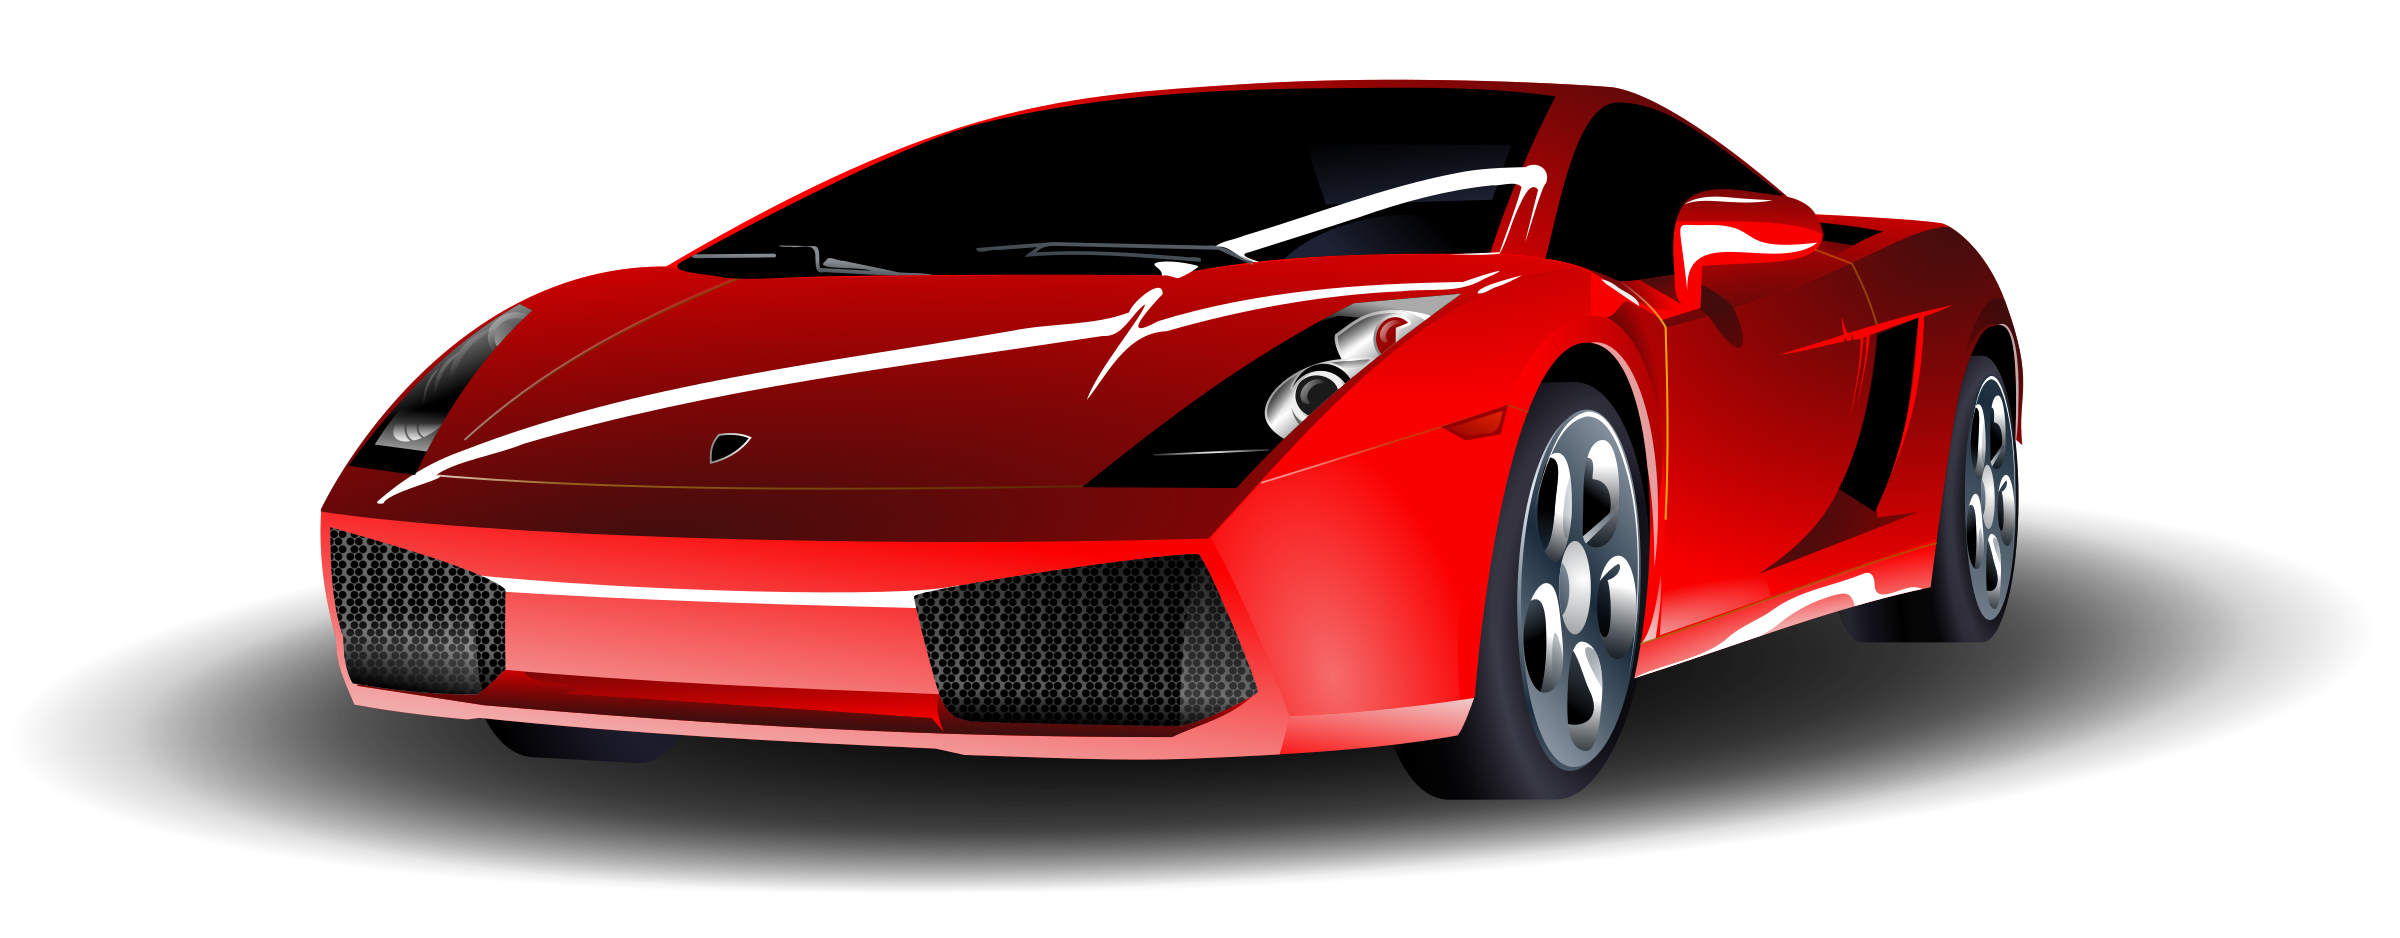 Fast car clipart transparent banner black and white library Lamborghini high resolution clipart - ClipartFox banner black and white library